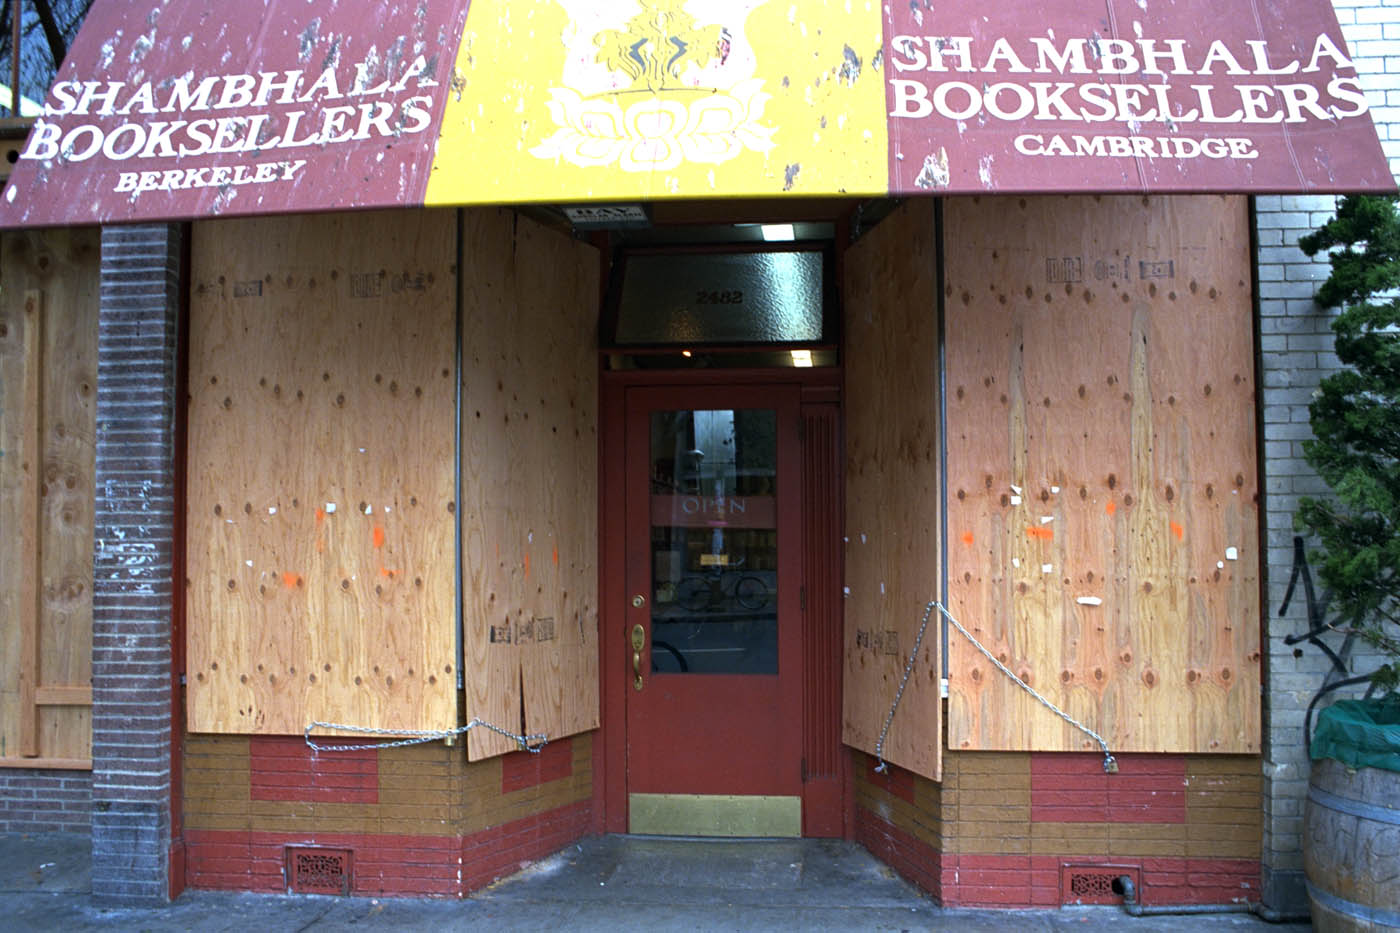 Shambhala Booksellers, Telegraph Avenue, during the People's Park riots. Berkeley 1991